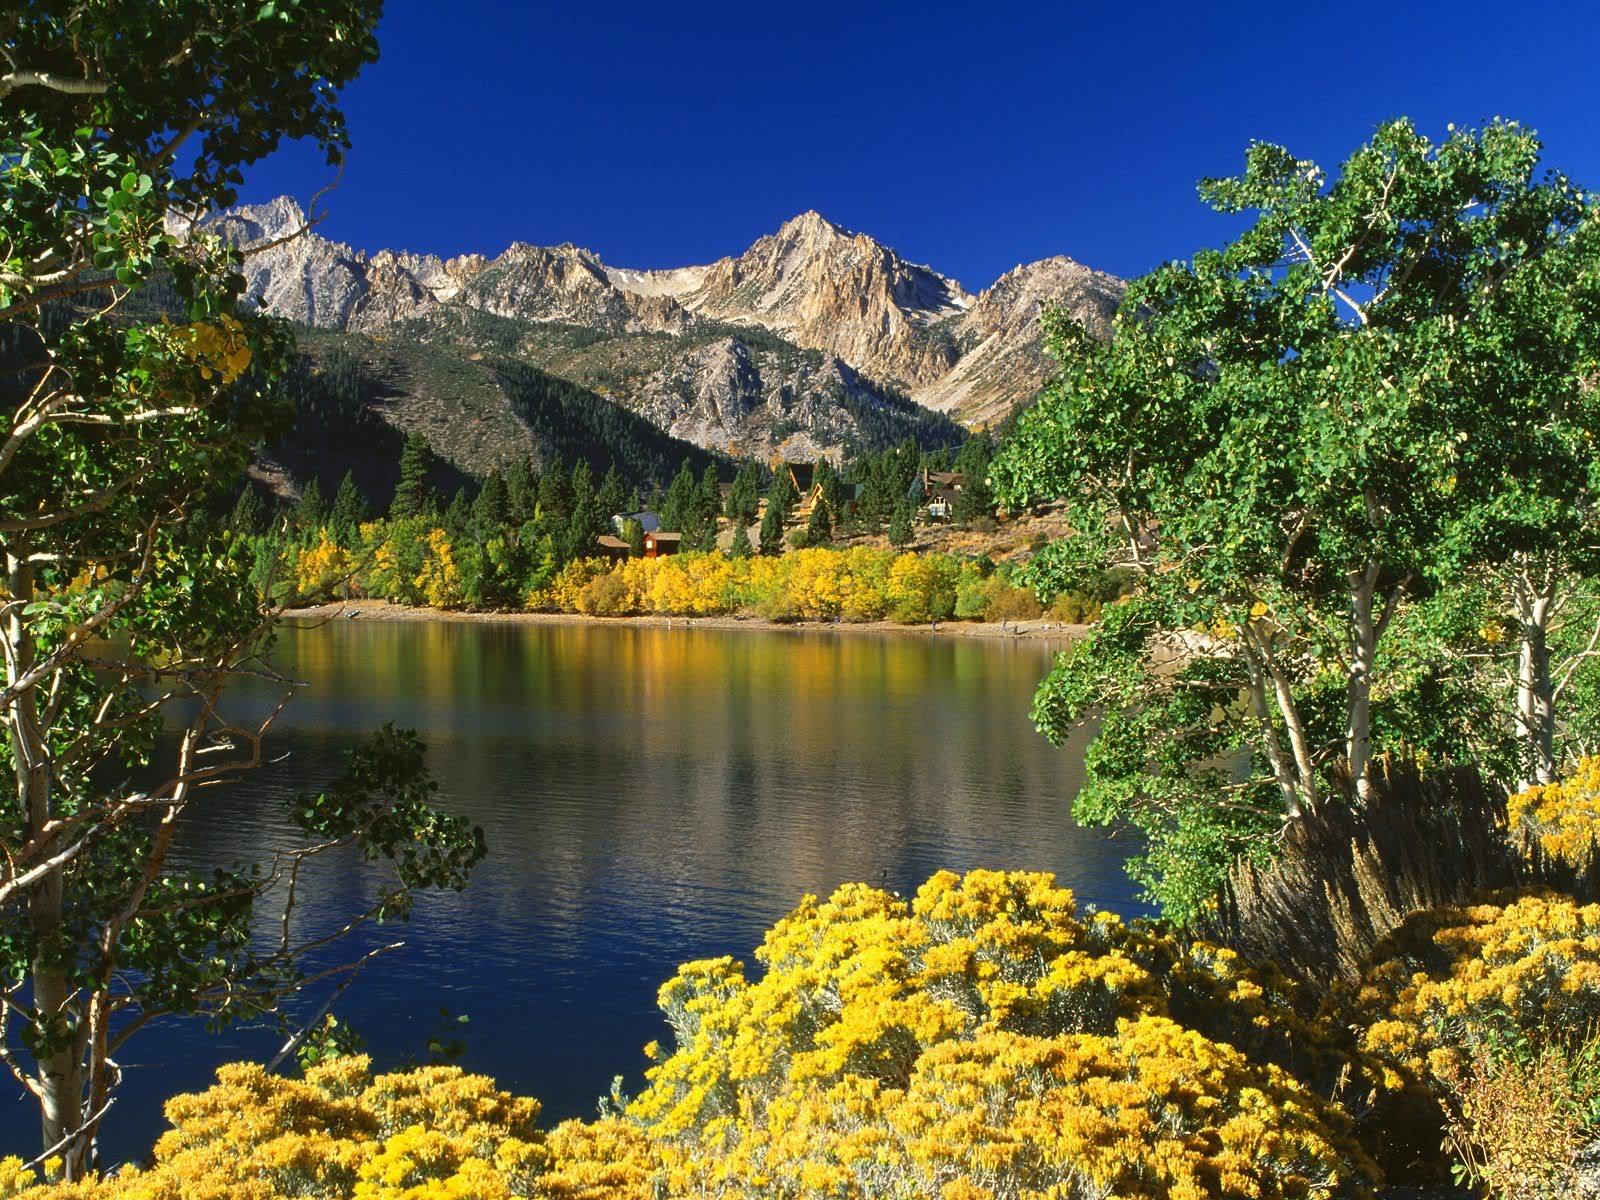 keindahan alam: most beautiful nature pictures